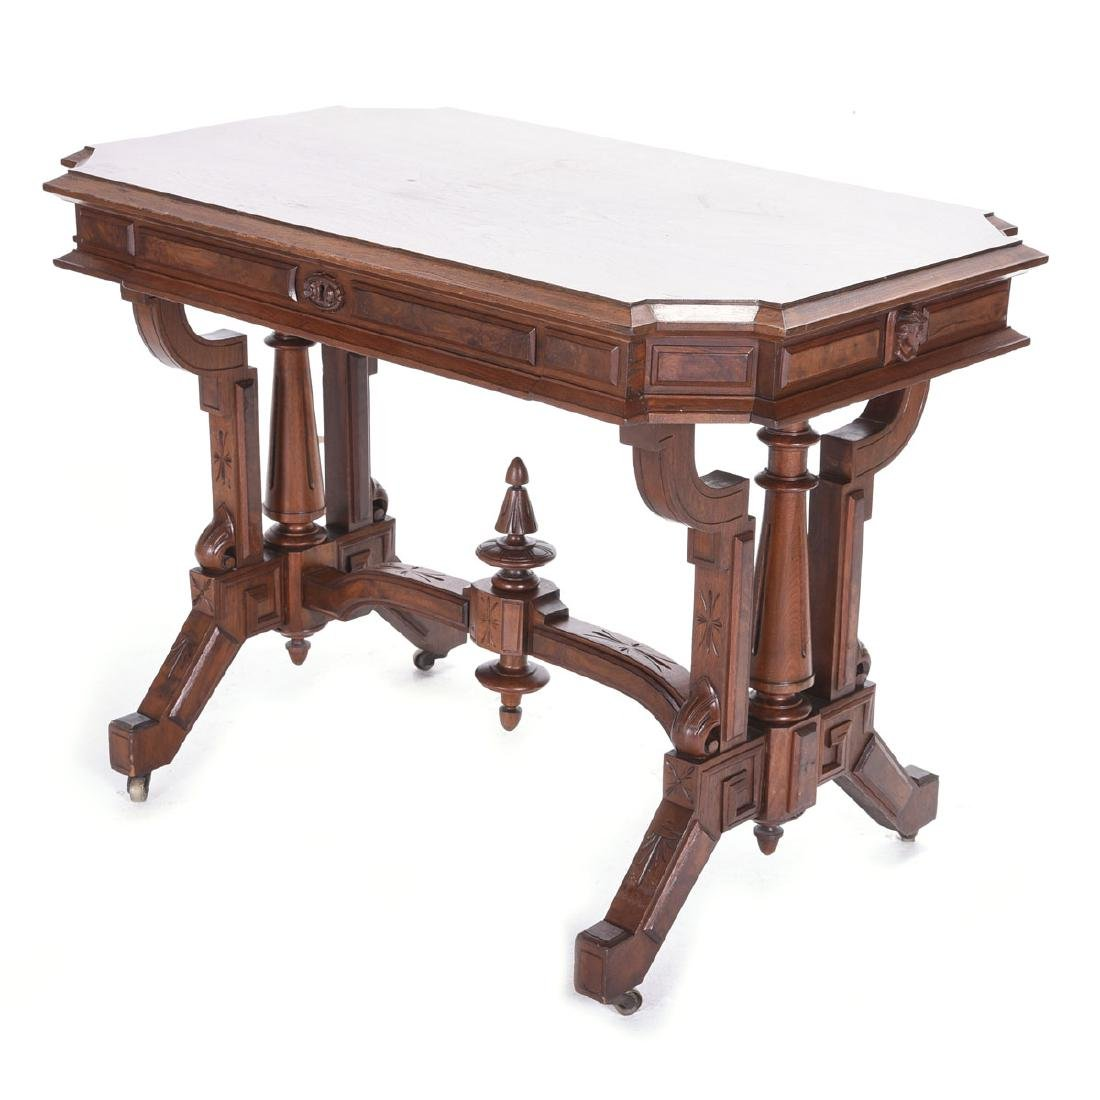 Renaissance Revival Walnut Desk, on Casters, with